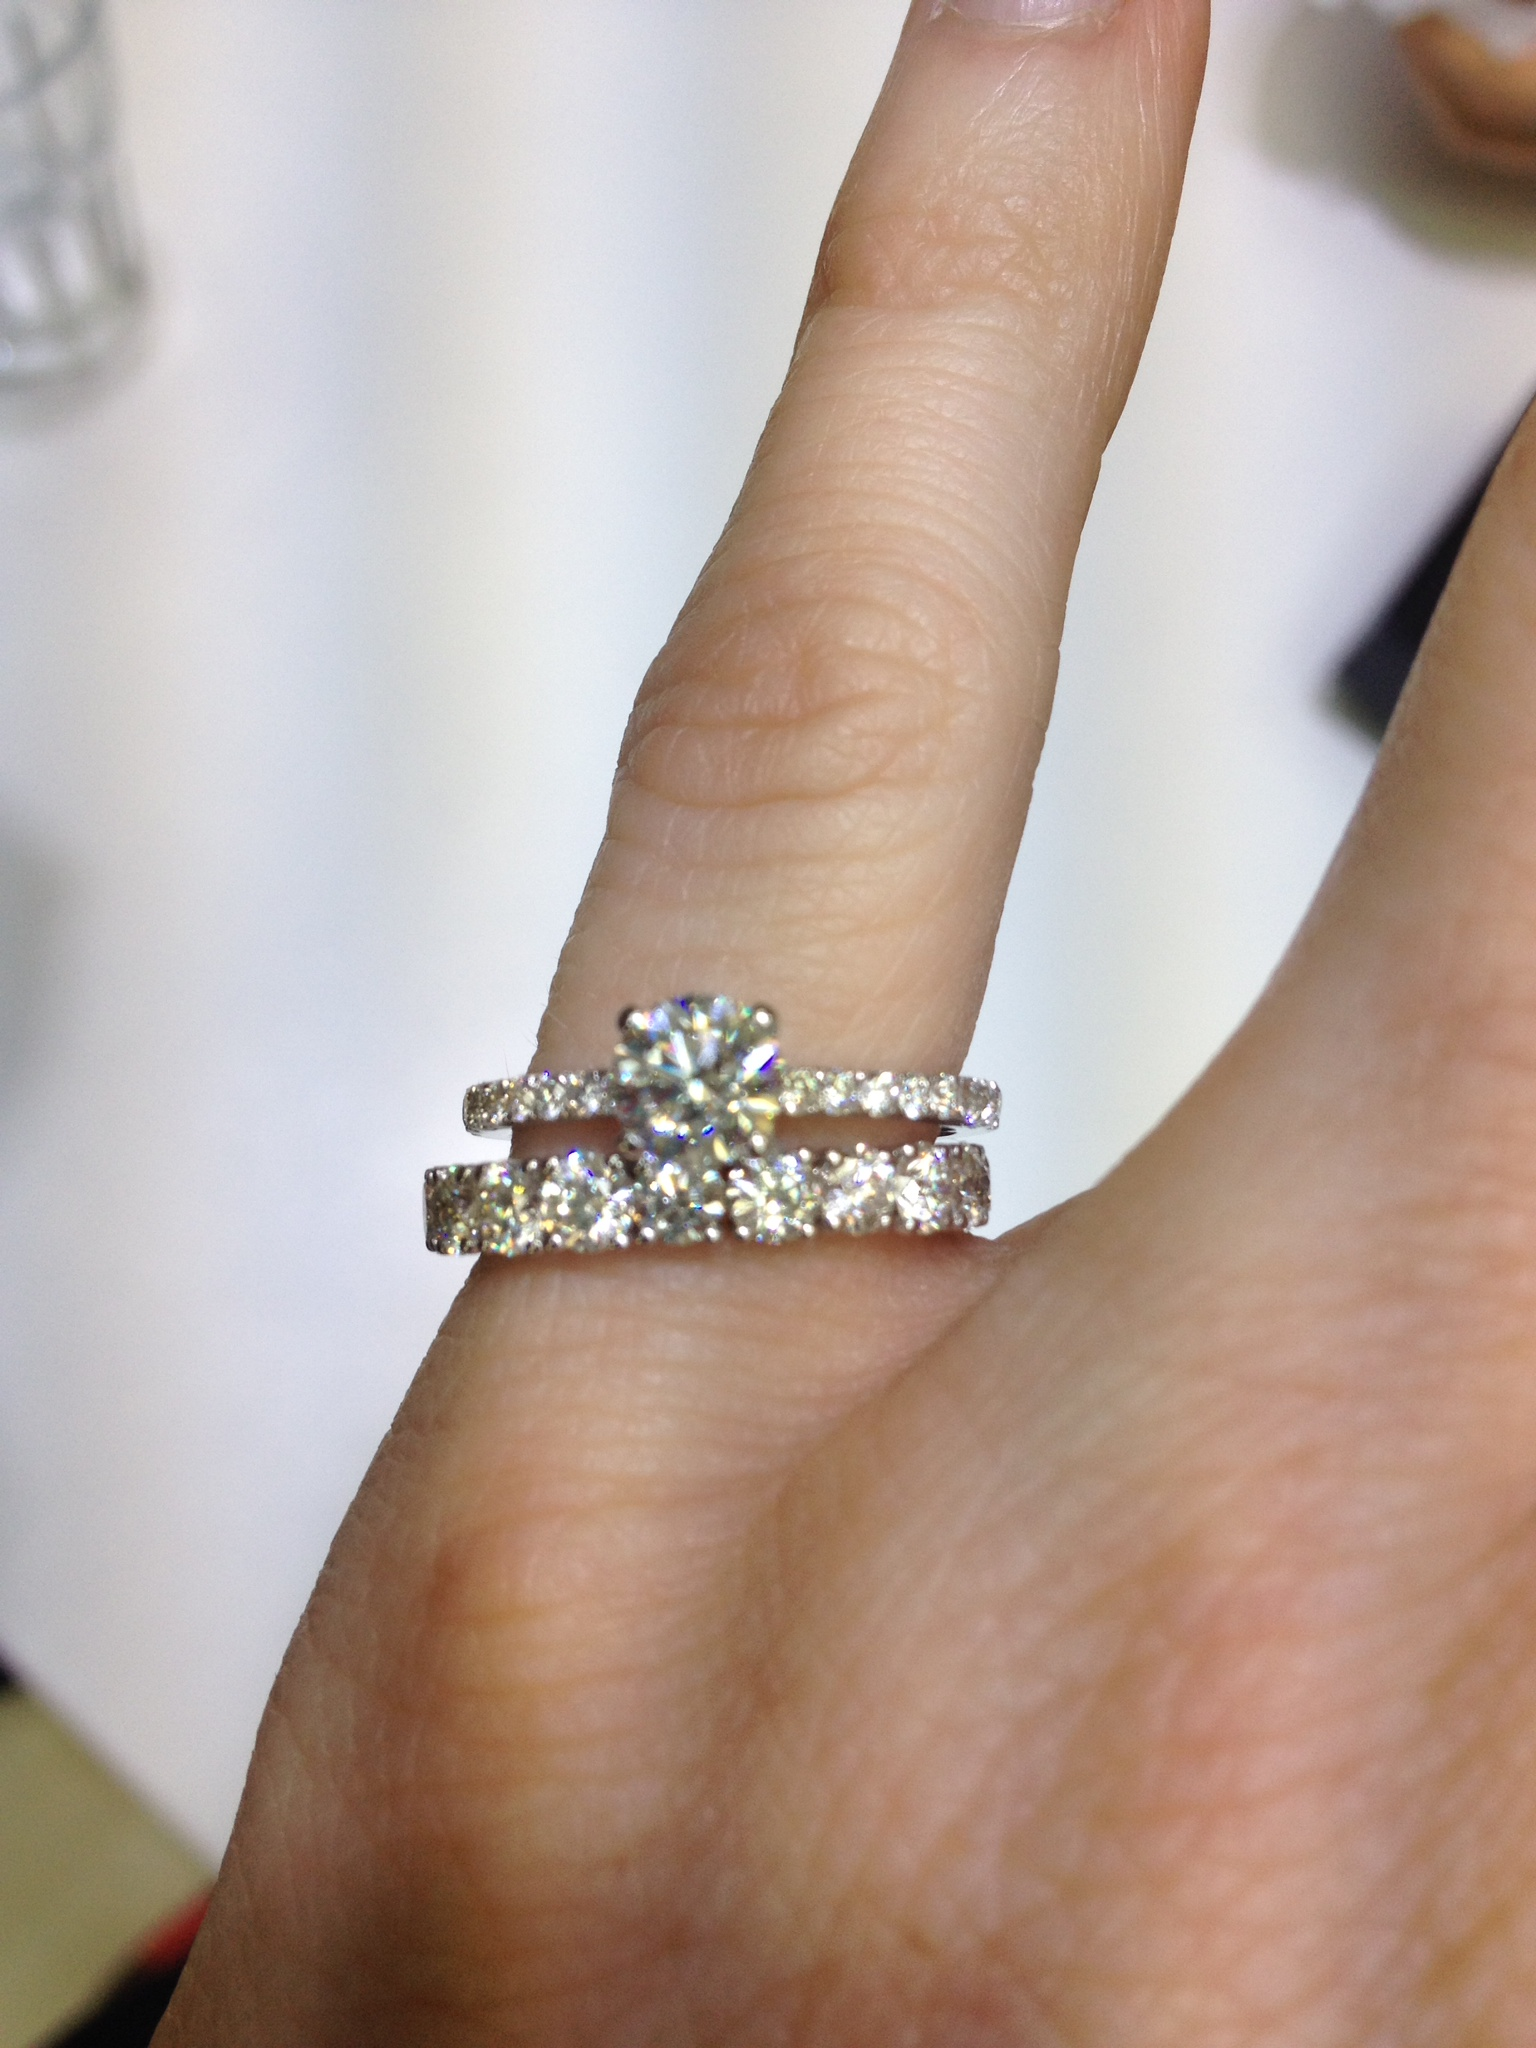 cant decide on wedding band show me thin pave erings with eternity wedding band eternity wedding bands Cant decide on wedding band Show me thin pave erings with eternity wedding band